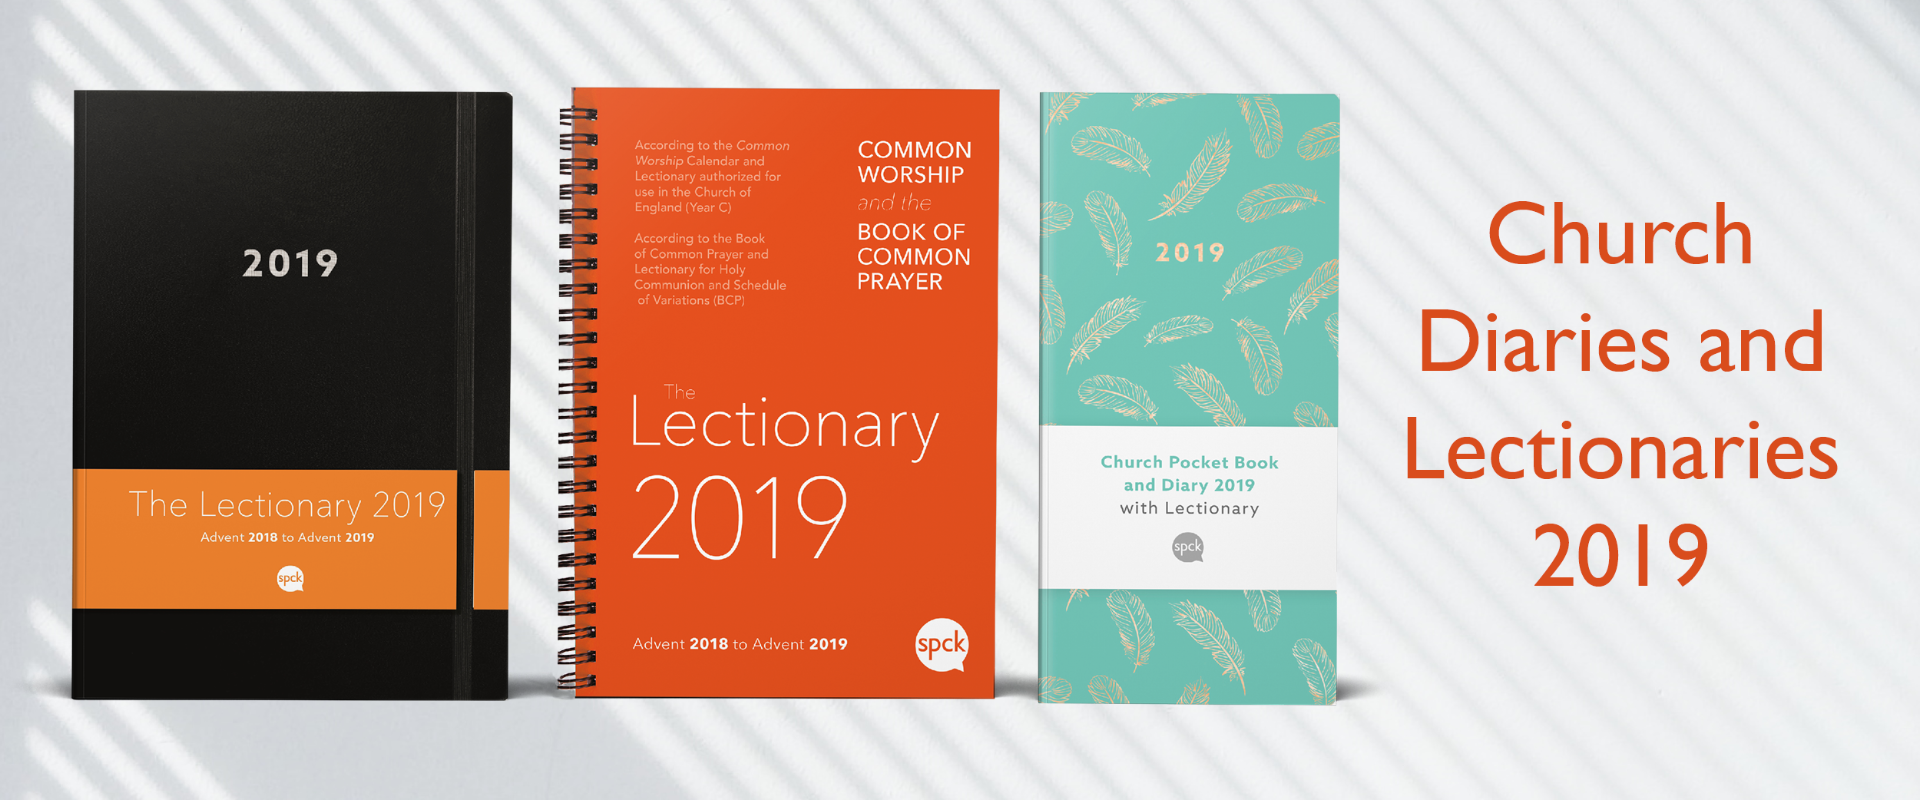 Year C 2019 Church Calendar With Diary And Lectionary SPCK Publishing